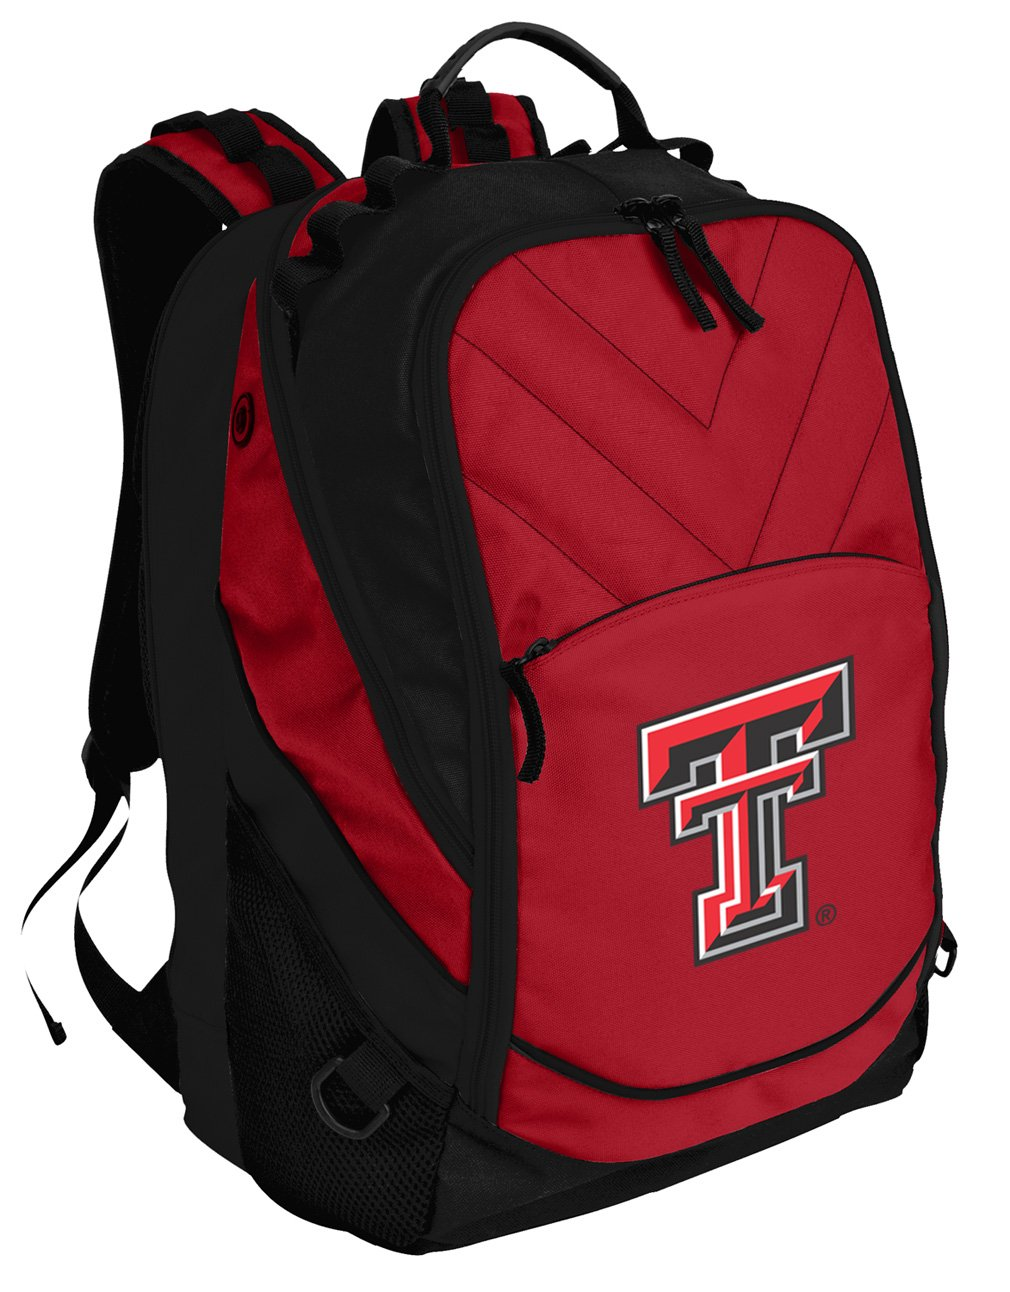 Broad Bay Texas Tech Red Raiders Backpack Red Texas Tech Laptop Computer Bags by Broad Bay